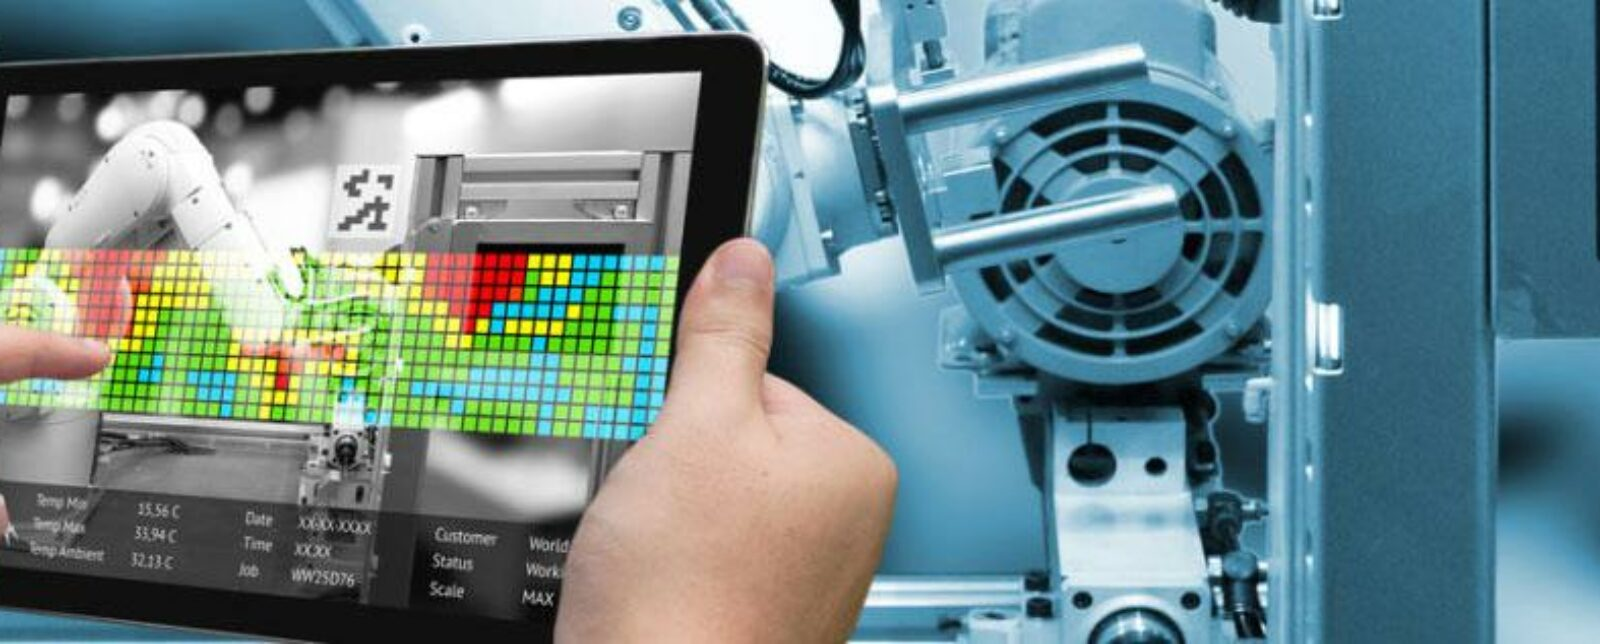 Total Productive Management (TPM) and Industry 4.0 Technologies: State of Play